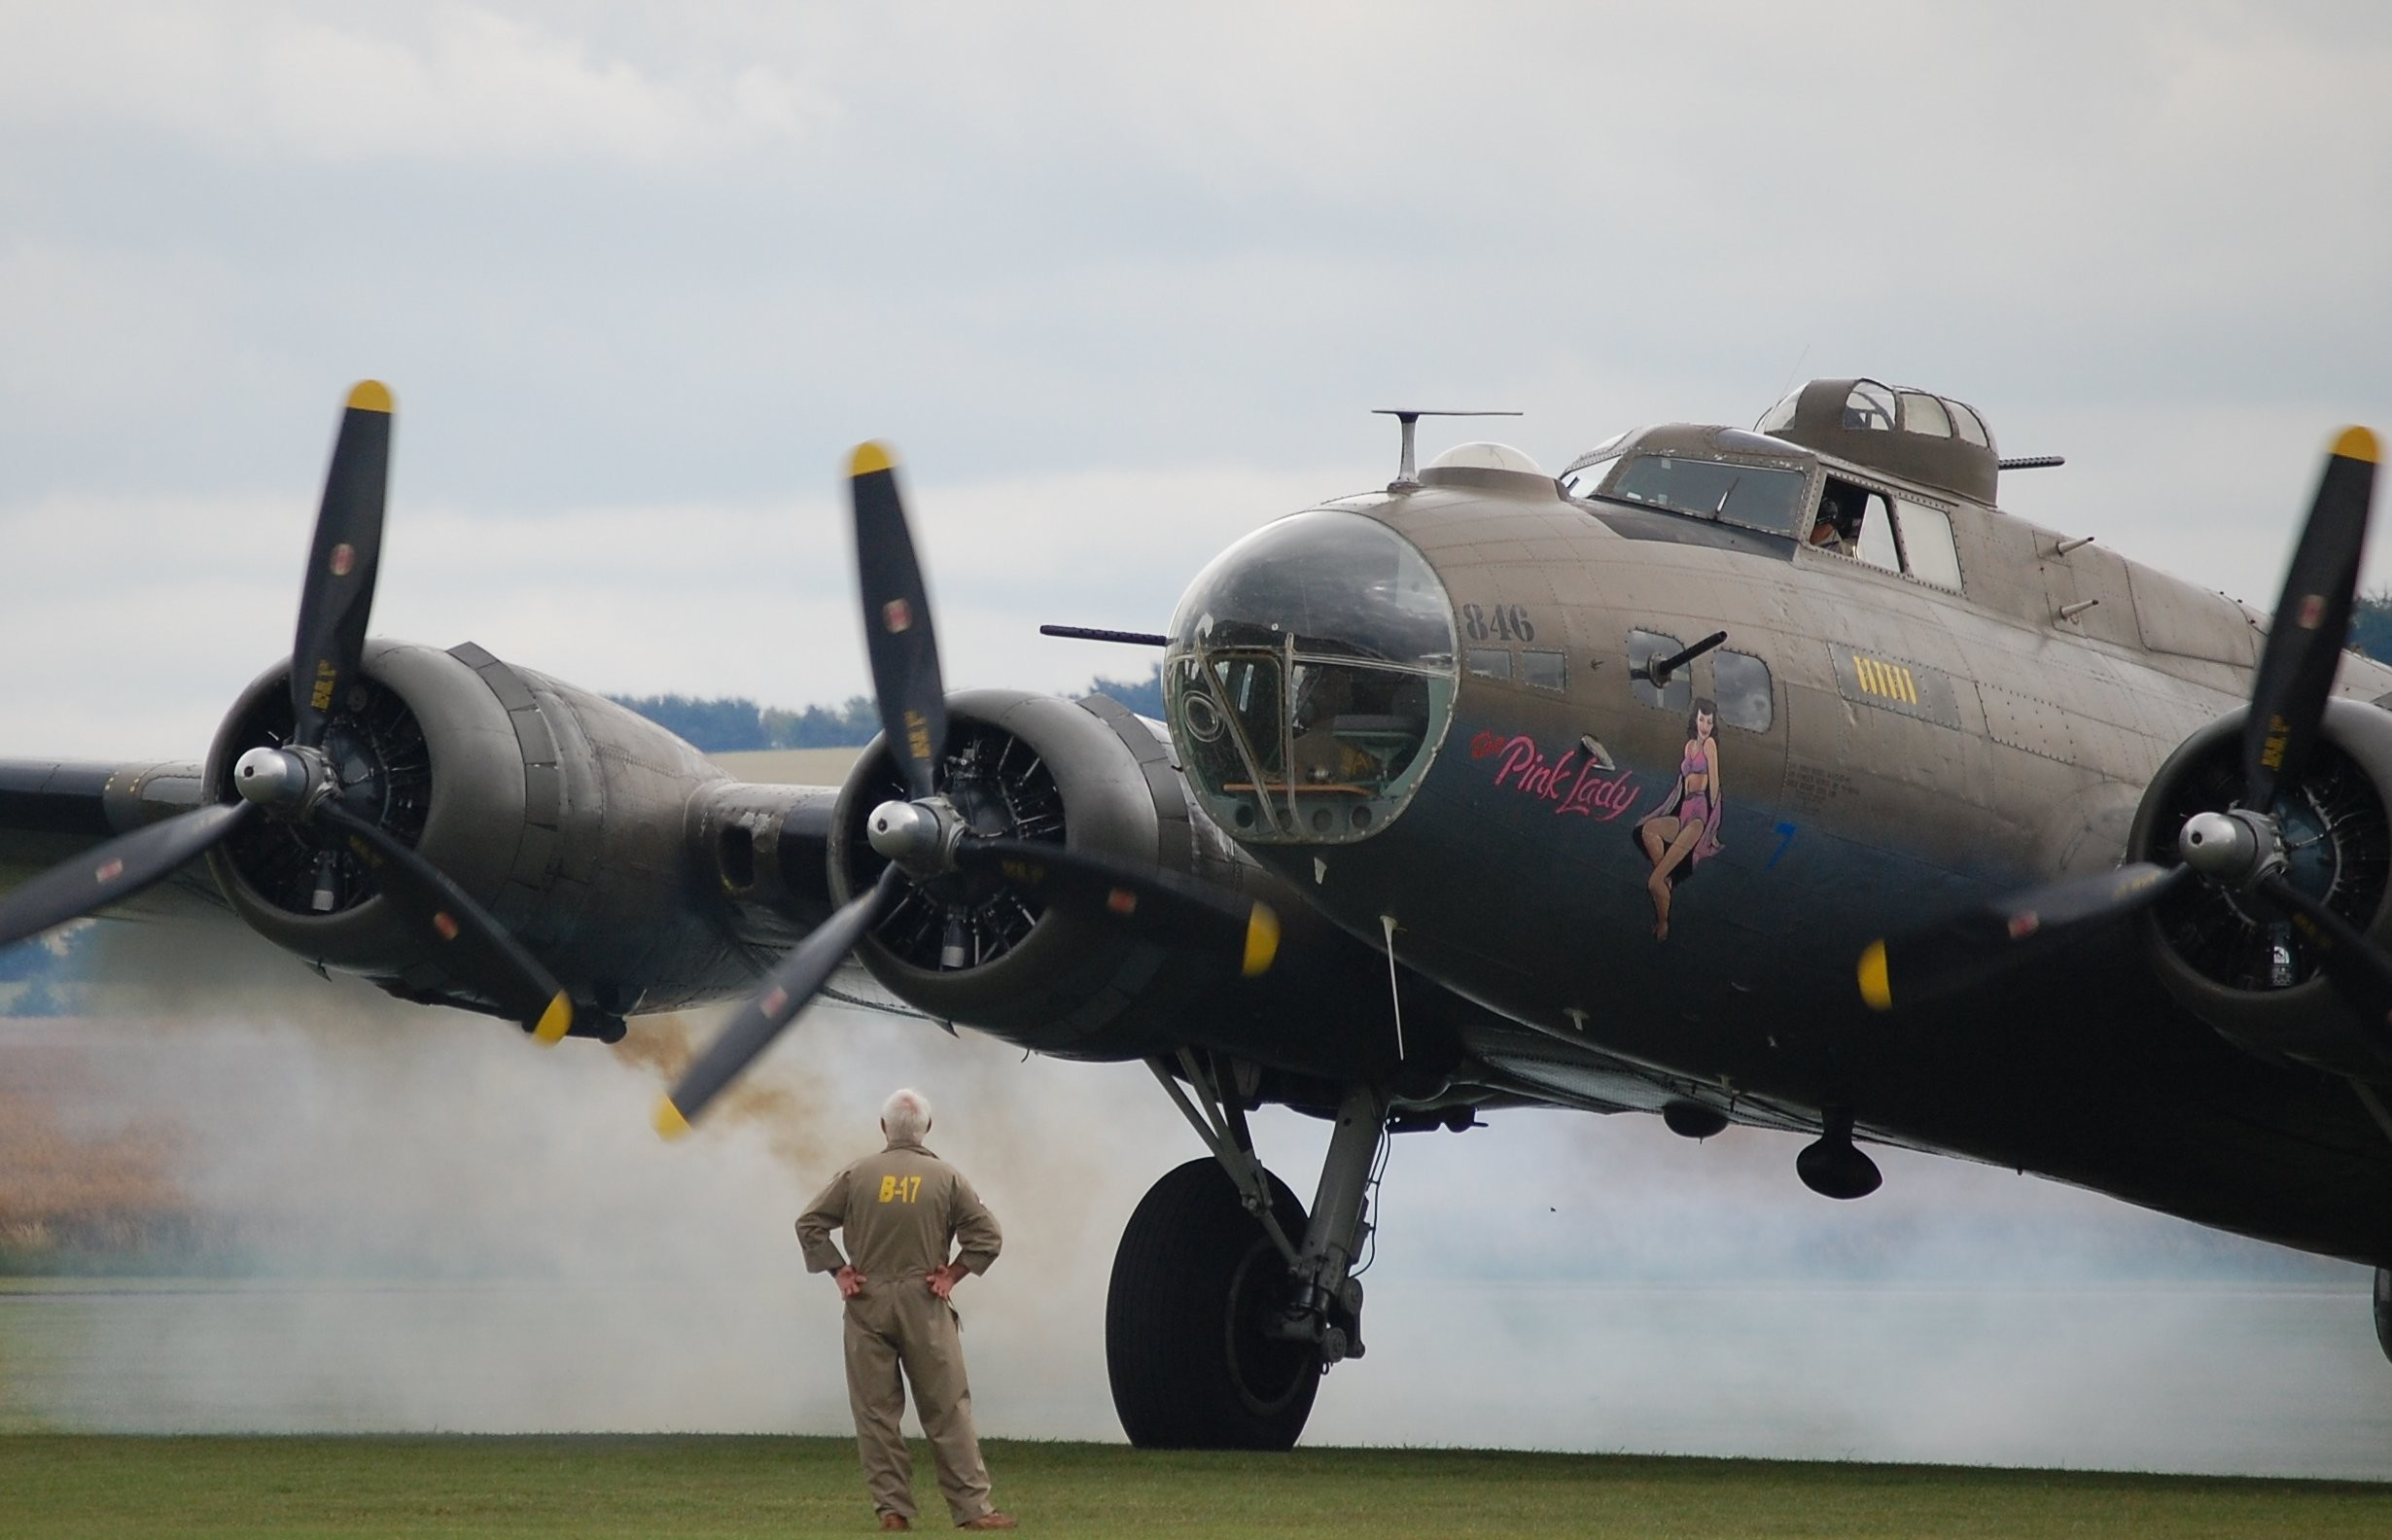 Boeing B-17 Flying Fortress #2